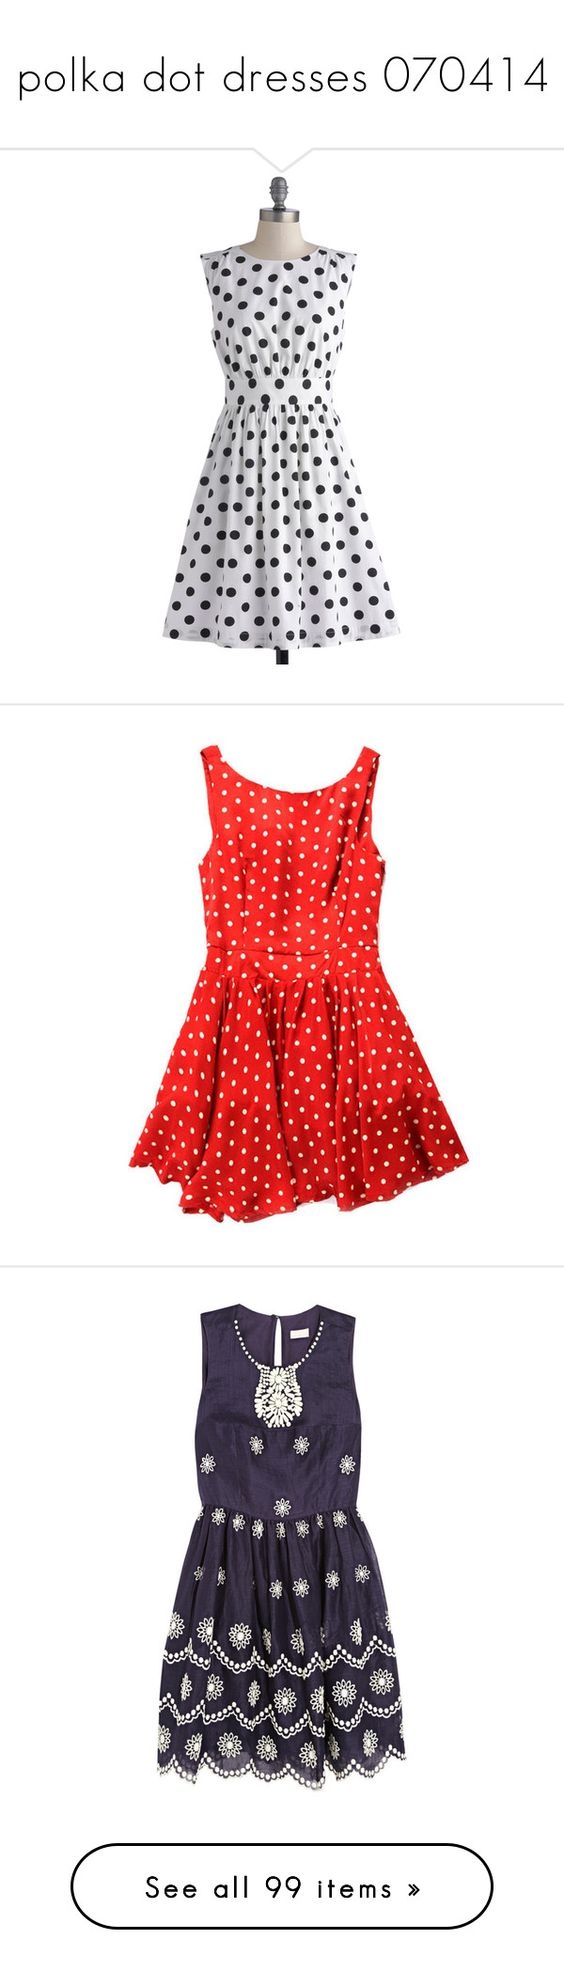 """polka dot dresses 070414"" by a-lovetypething ❤ liked on Polyvore featuring dresses, white, modcloth, black, polka dot, apparel, fashion dress, black dress, skater skirt and white skater skirt"